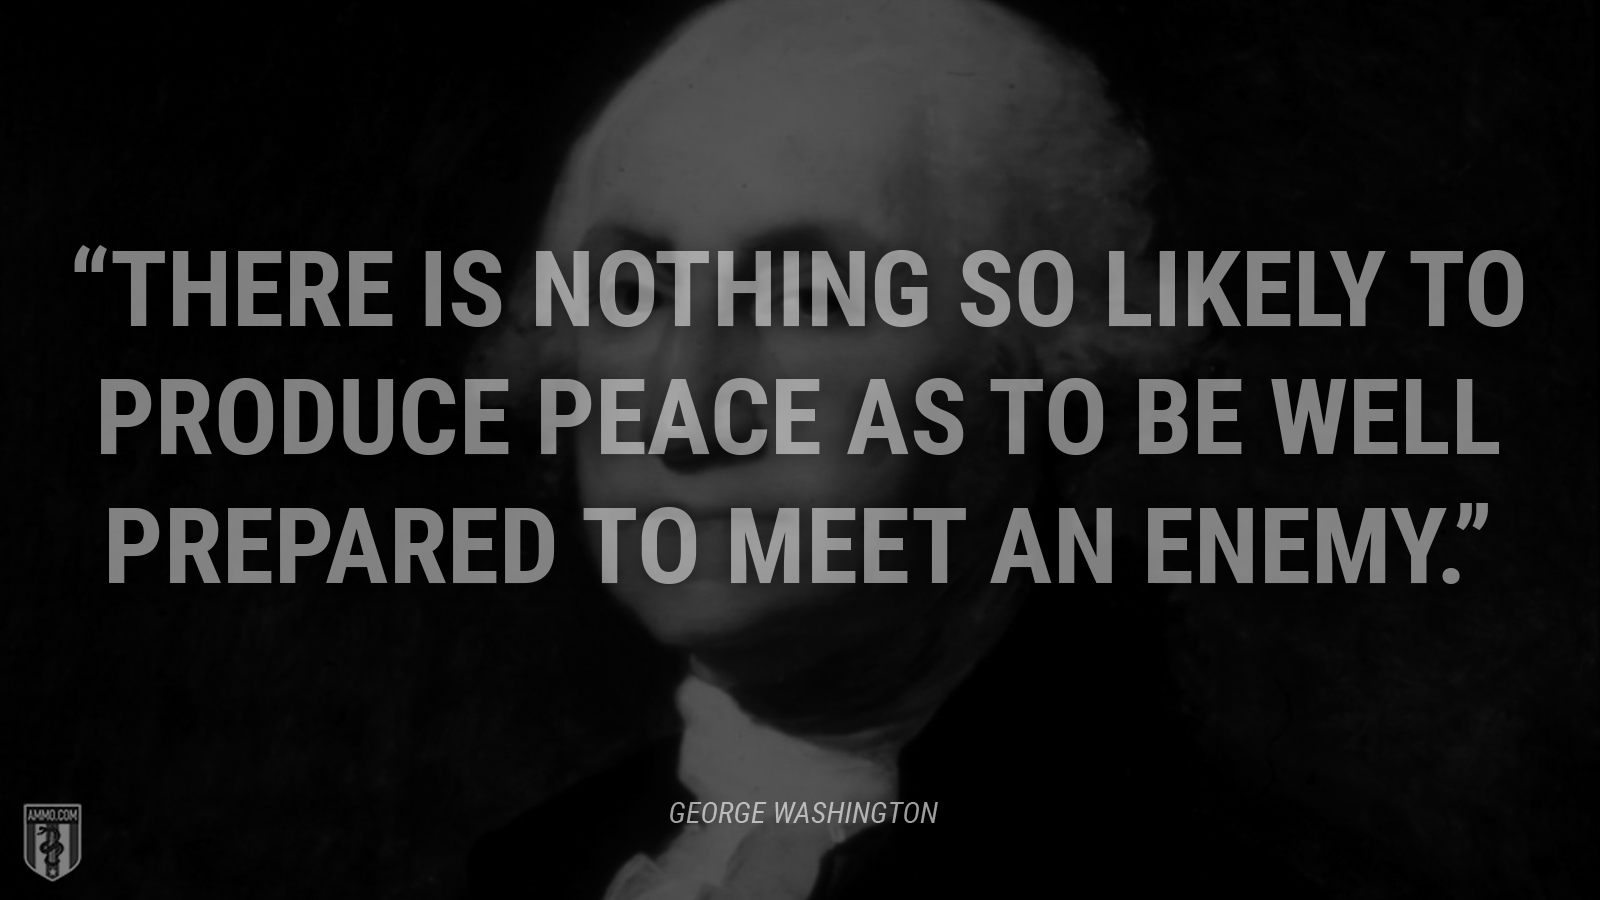 """There is nothing so likely to produce peace as to be well prepared to meet an enemy."" - George Washington"